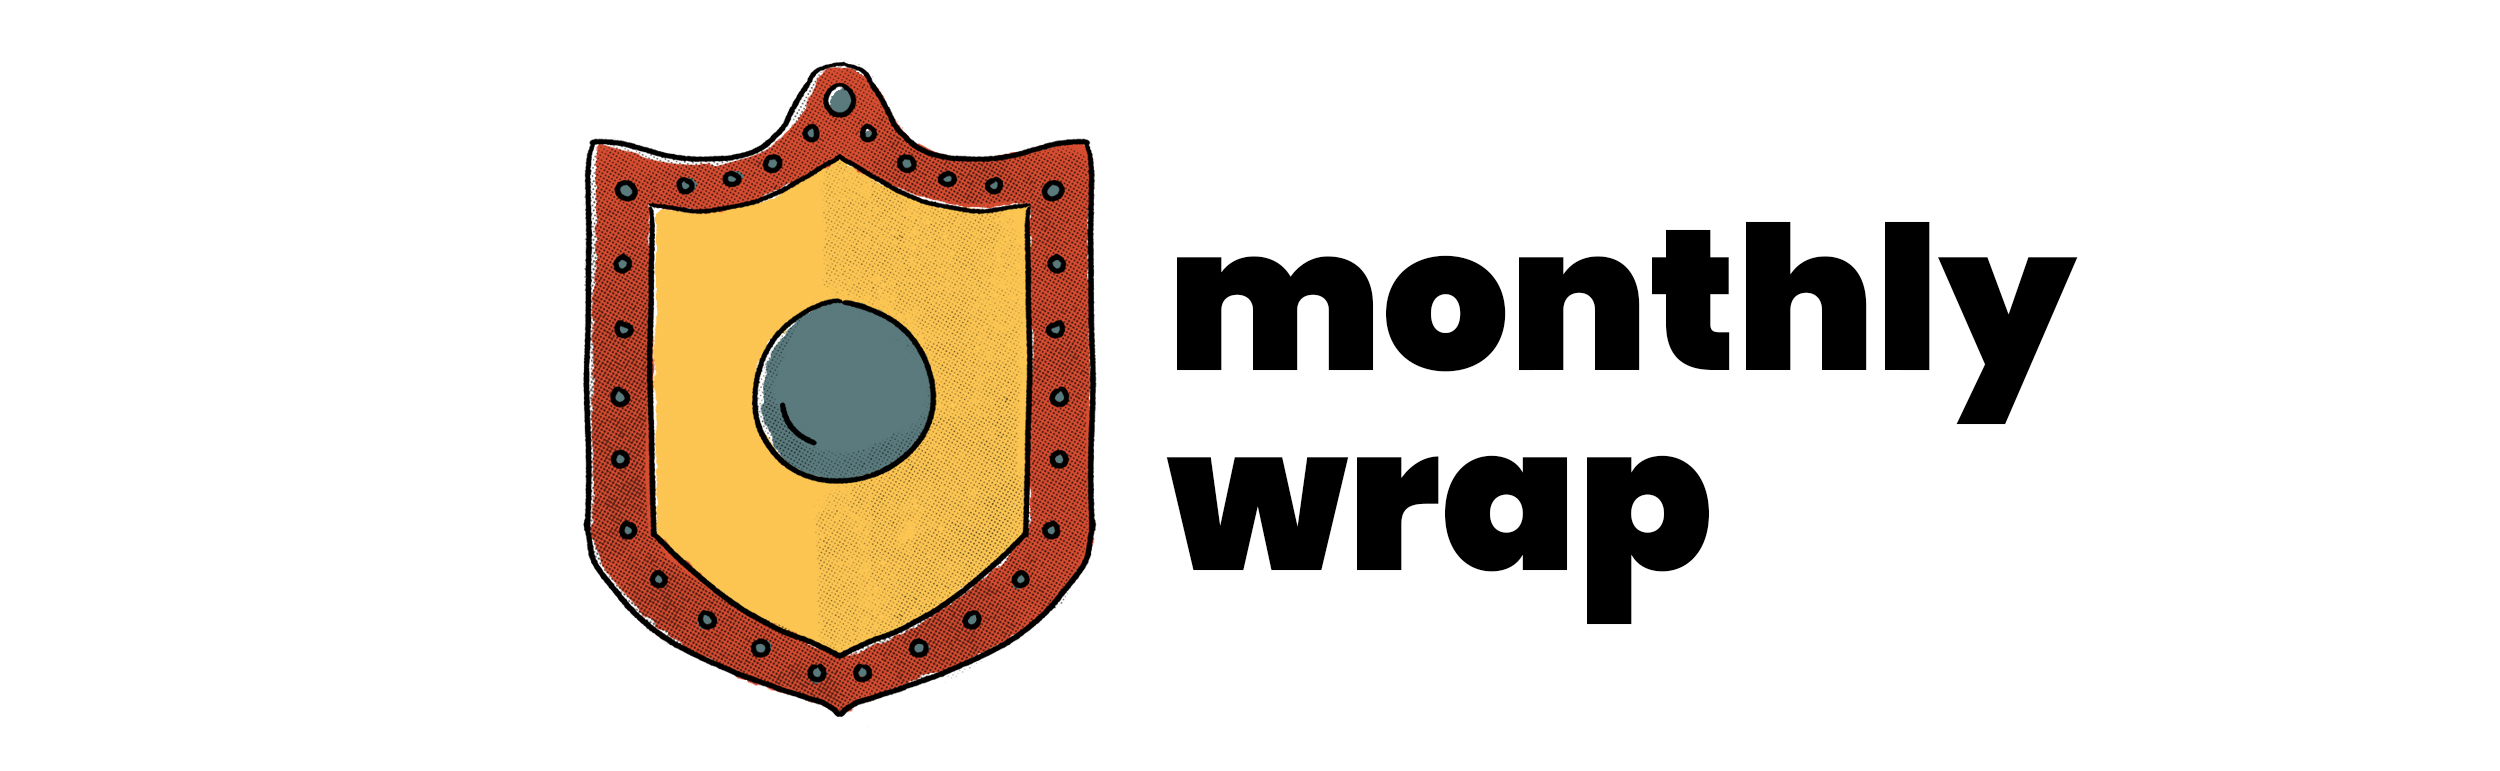 Monthly Wrap banner, showing a yellow shield with a red border and a blue center plate